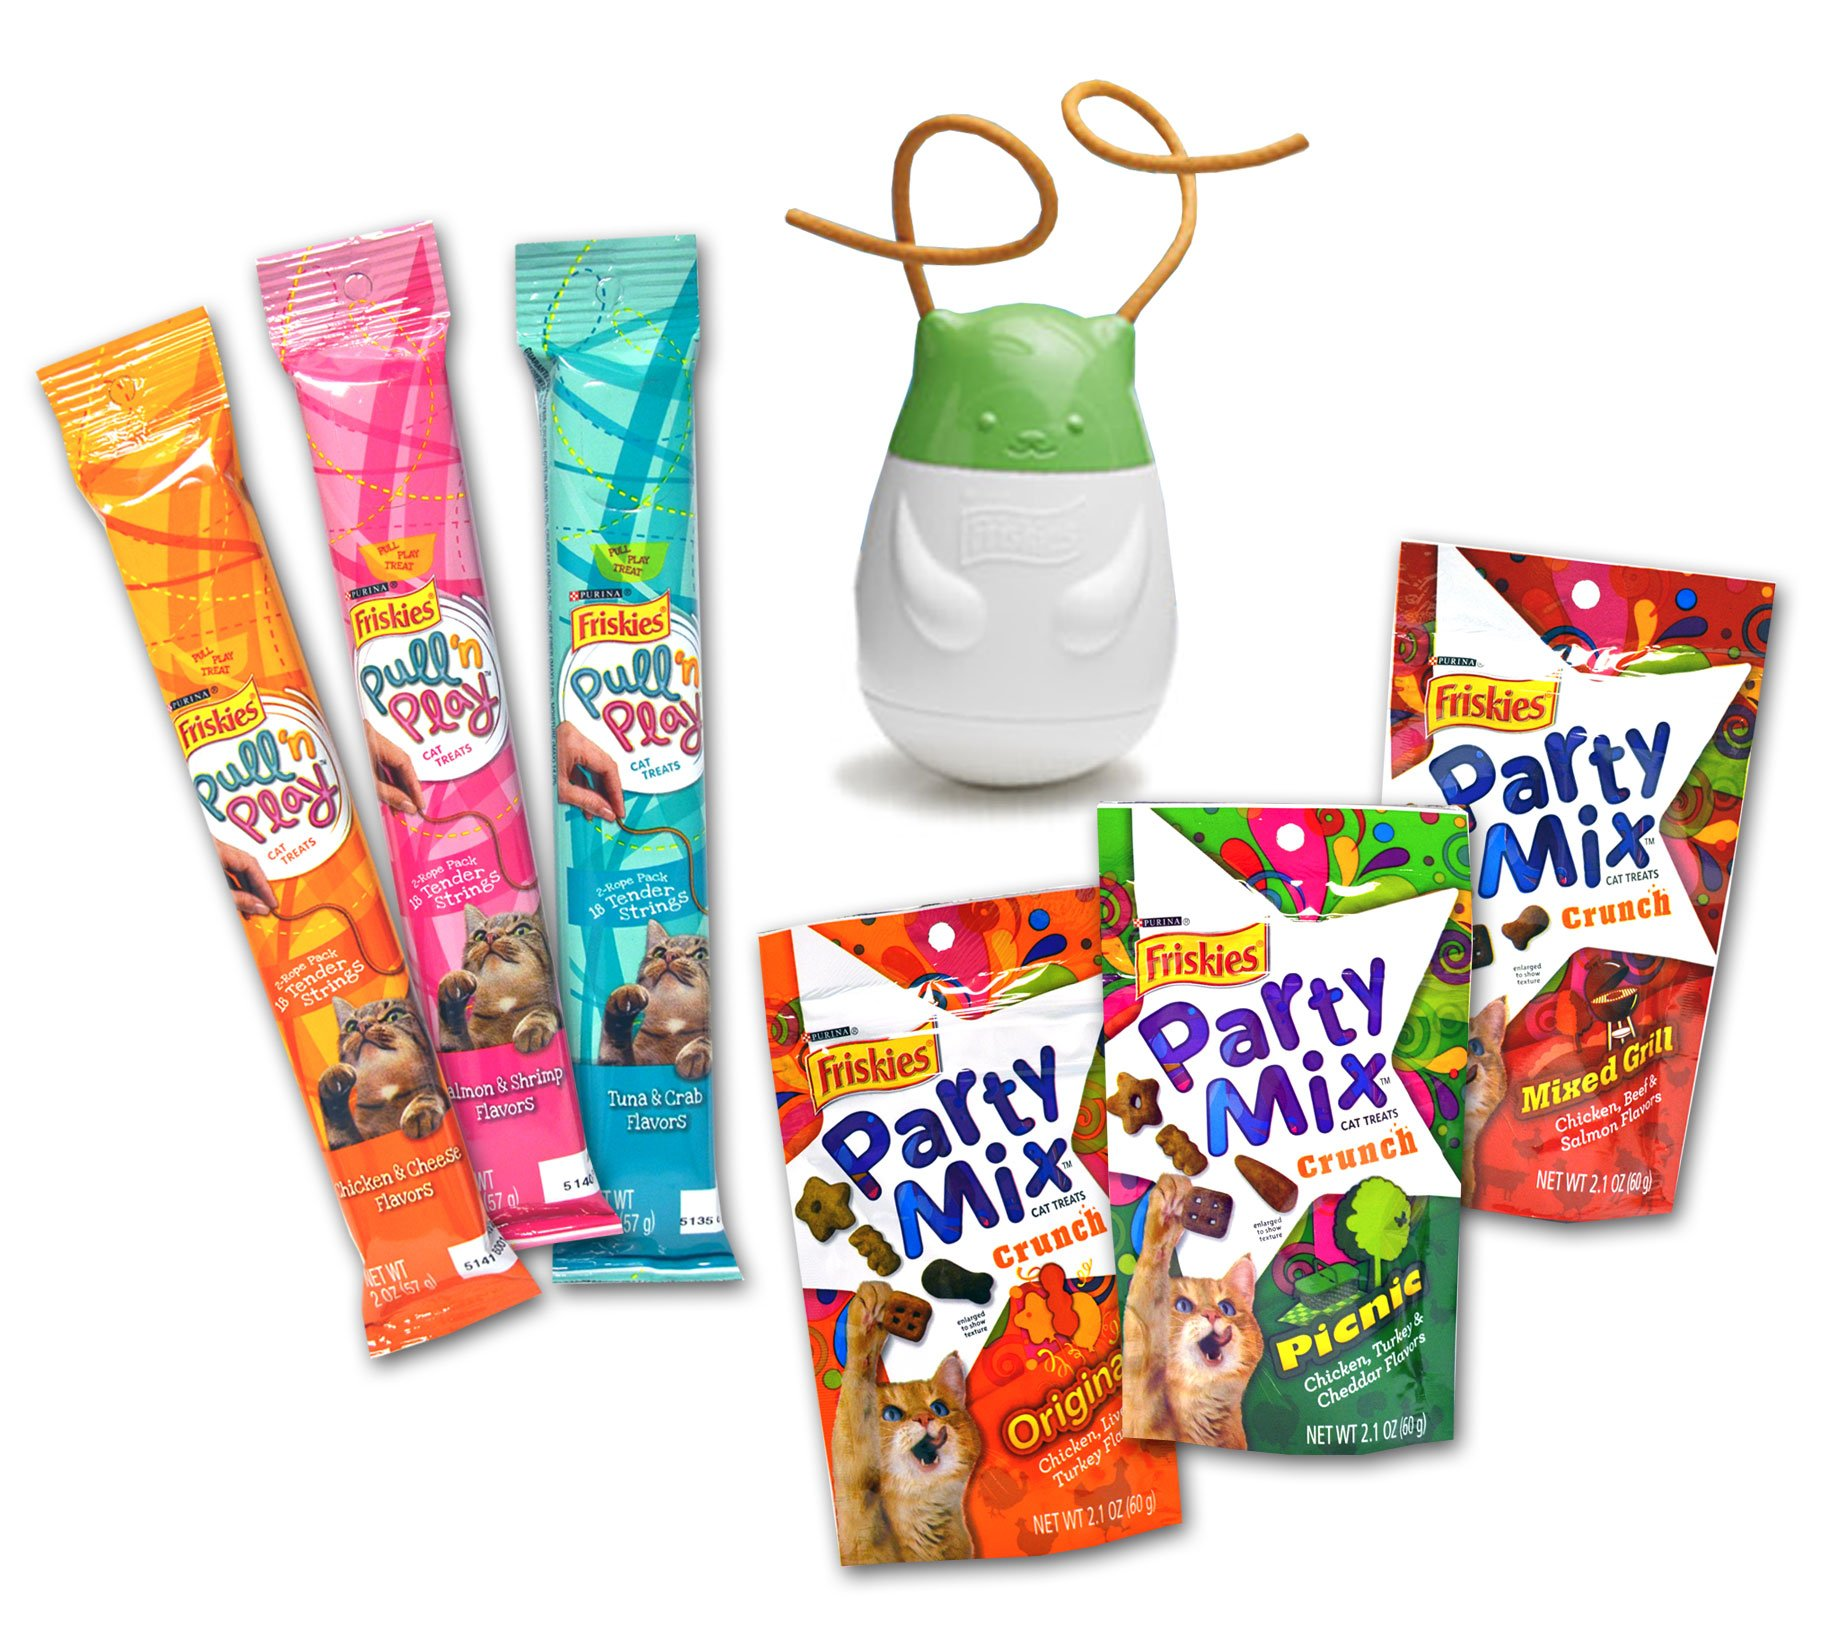 Purina Friskies Cat Treats, Pull 'n Play Toy and Treat Variety Pack - 7 Total Items (1 Wobbert Wobble Toy, 3 Friskies Party Mix Crunch Treat Flavors, & 3 Pull 'n Play Snack Tender String Snack Flavors)